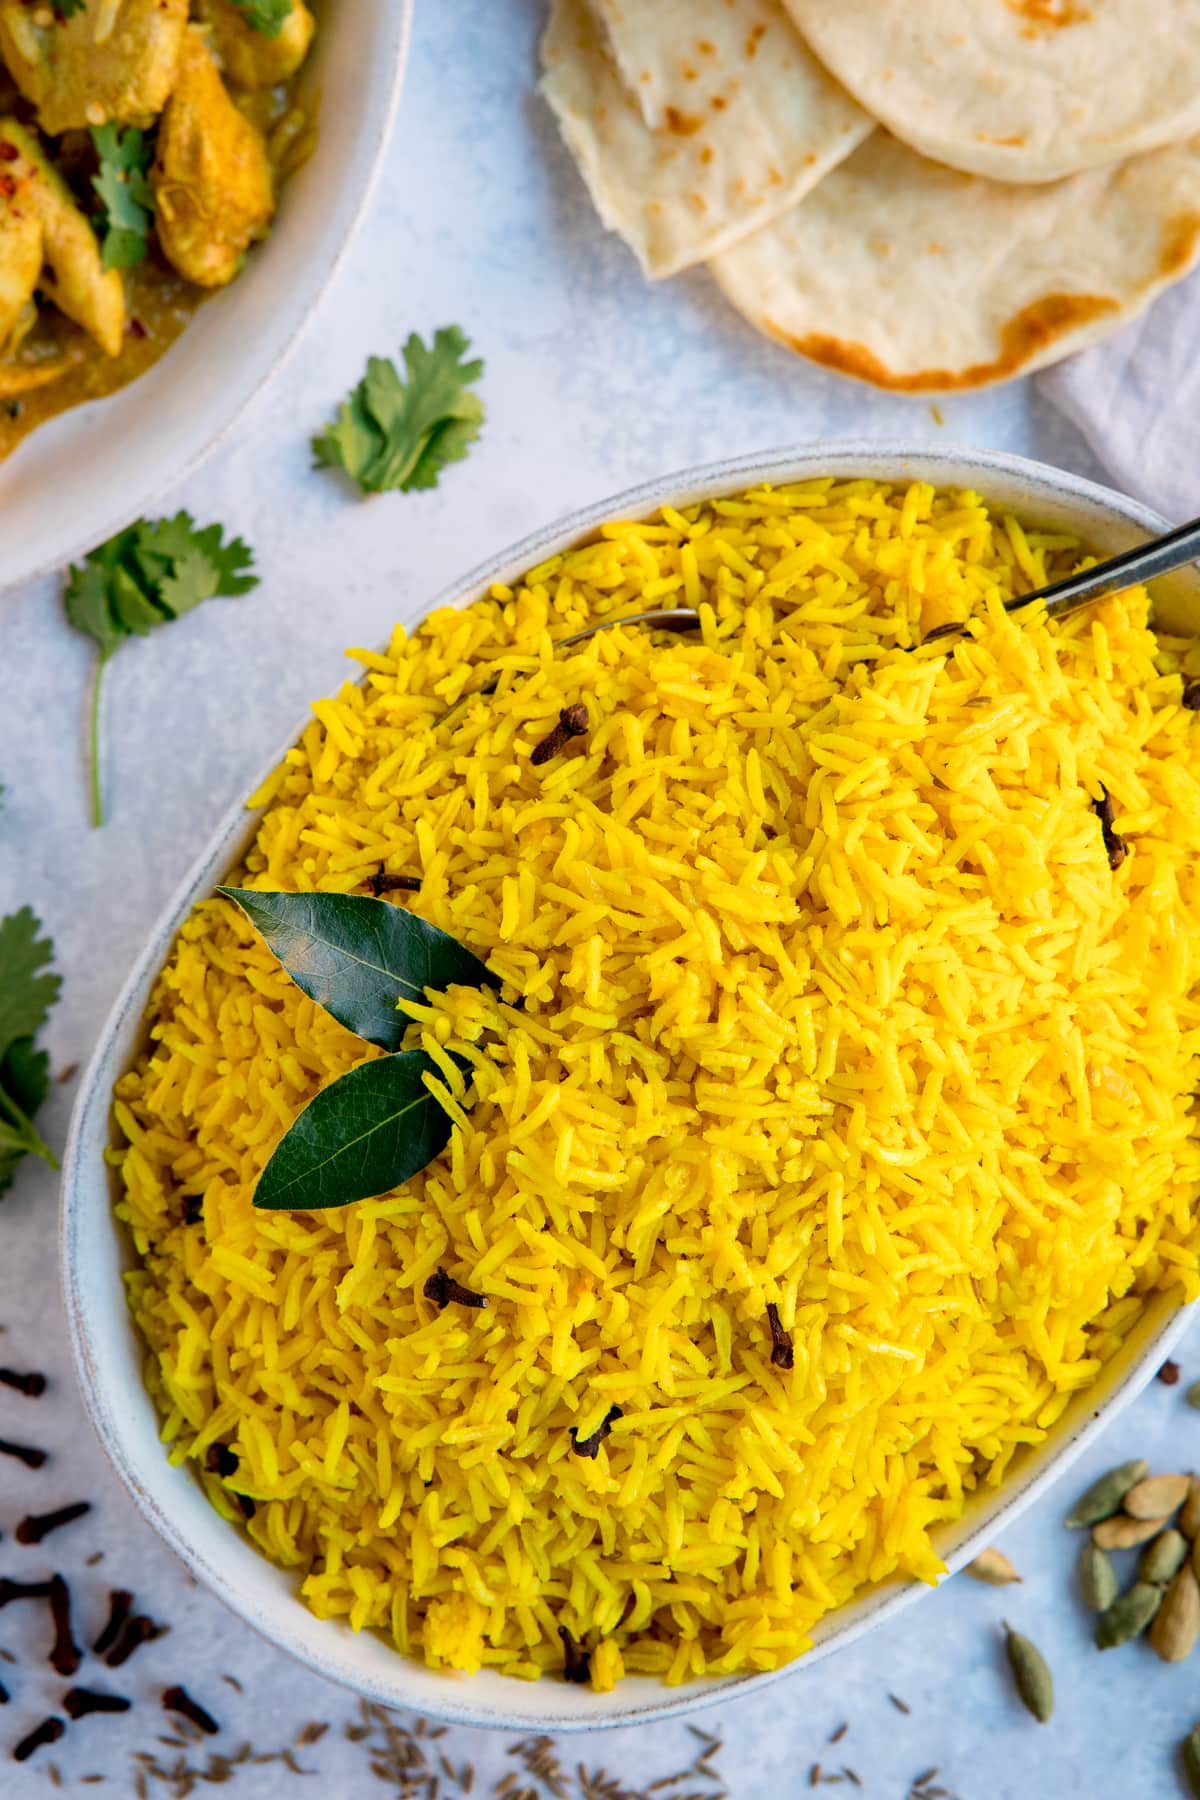 Pilau rice in a white bowl on a light background. Flatbreads and plate of curry just in frame